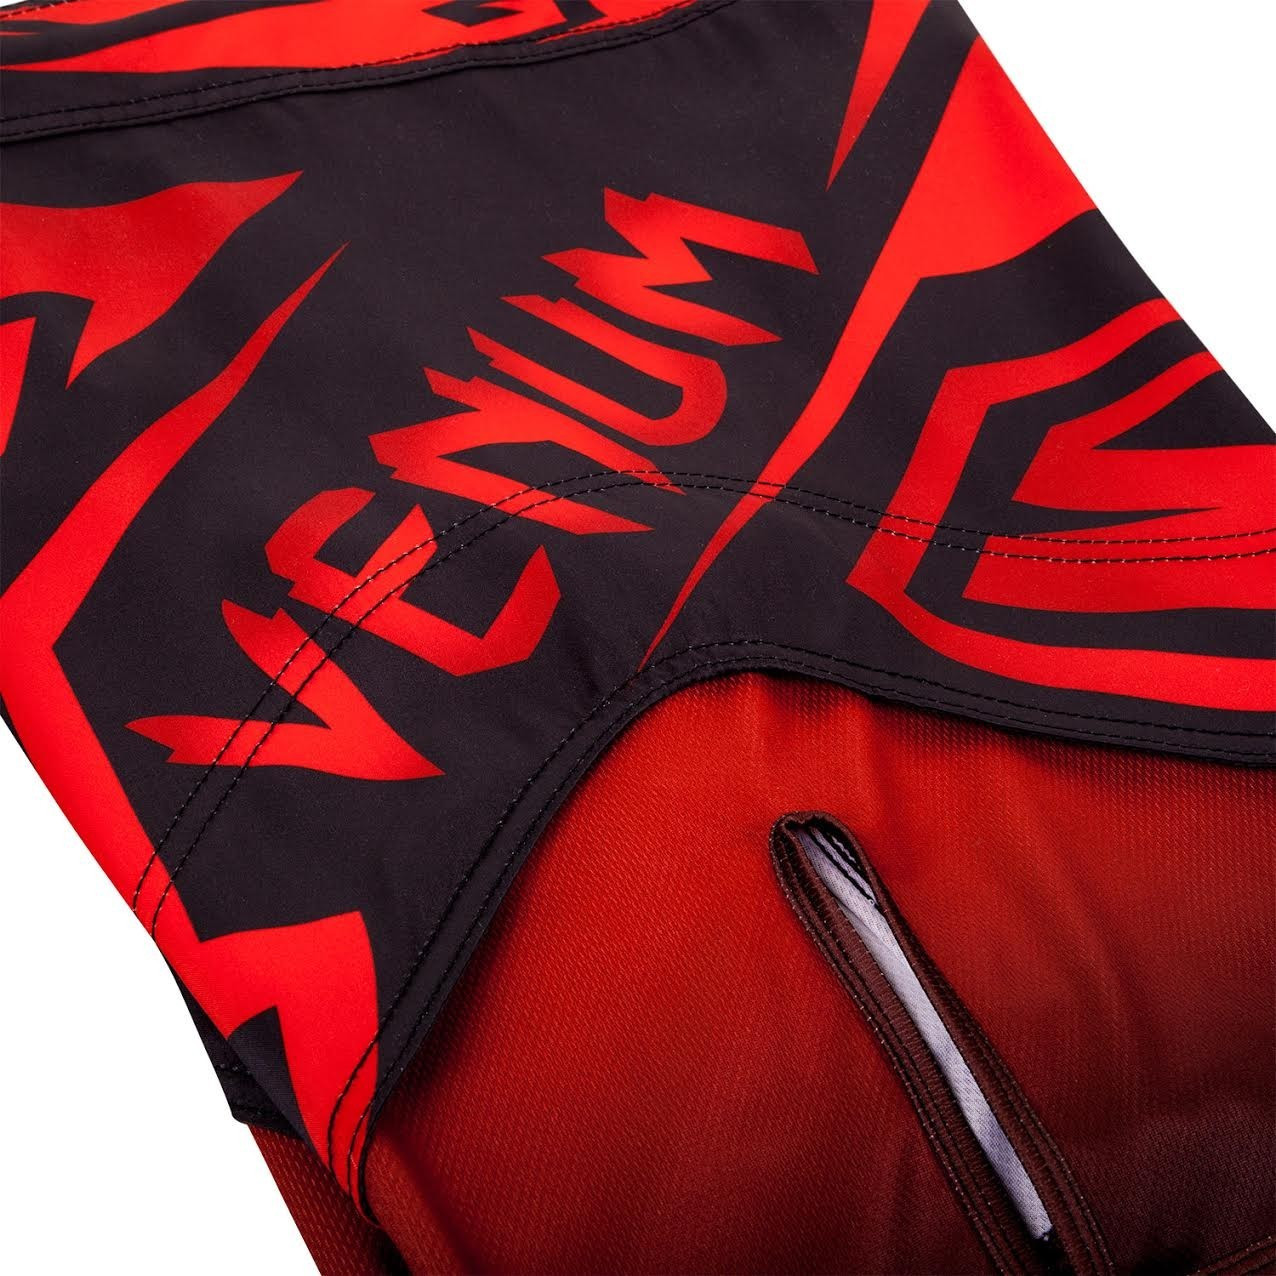 Venum Shadow Hunter Fight Short in Red and Black.  Available at www.thejiujitsushop.com.  Premium fight shorts shadow hunter  enjoy Free Shipping from The Jiu Jitsu Shop